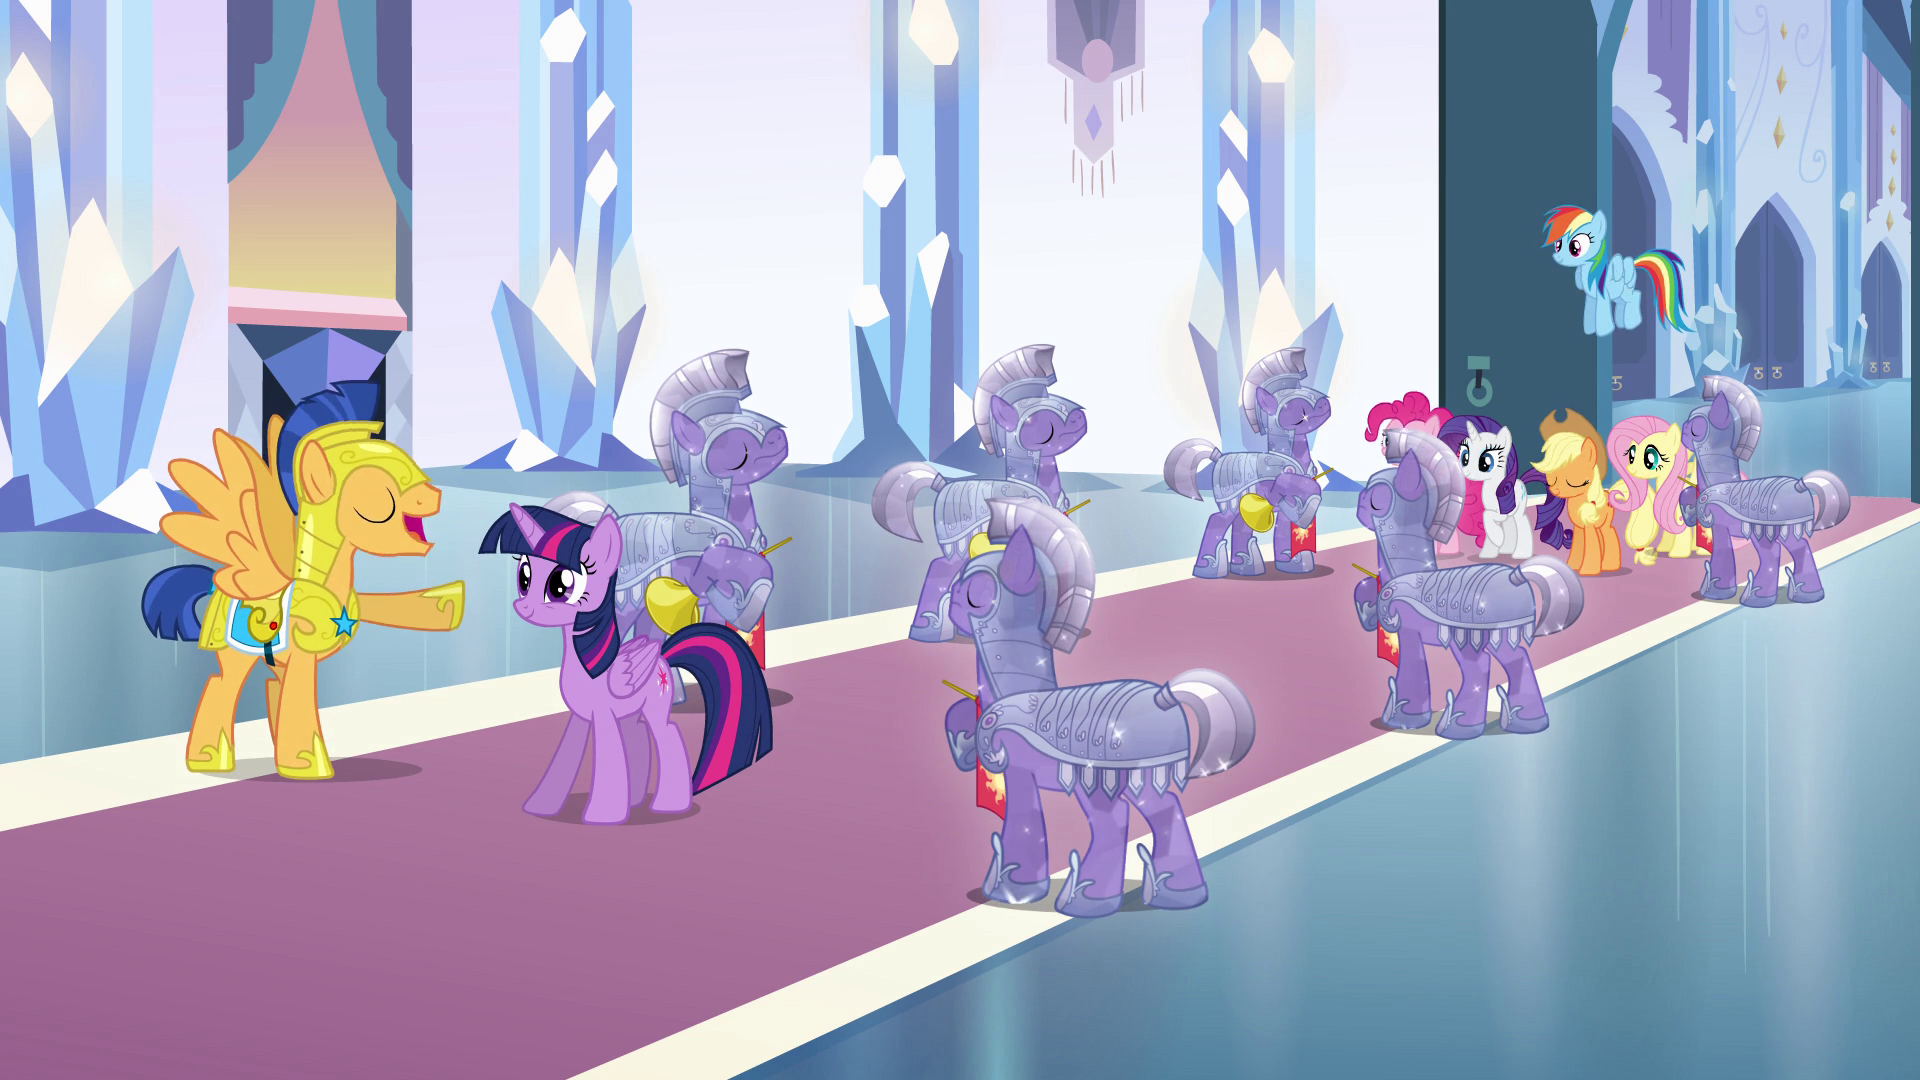 Image 640px Flash Sentry Introduces Twilight Sparkle Eg Png